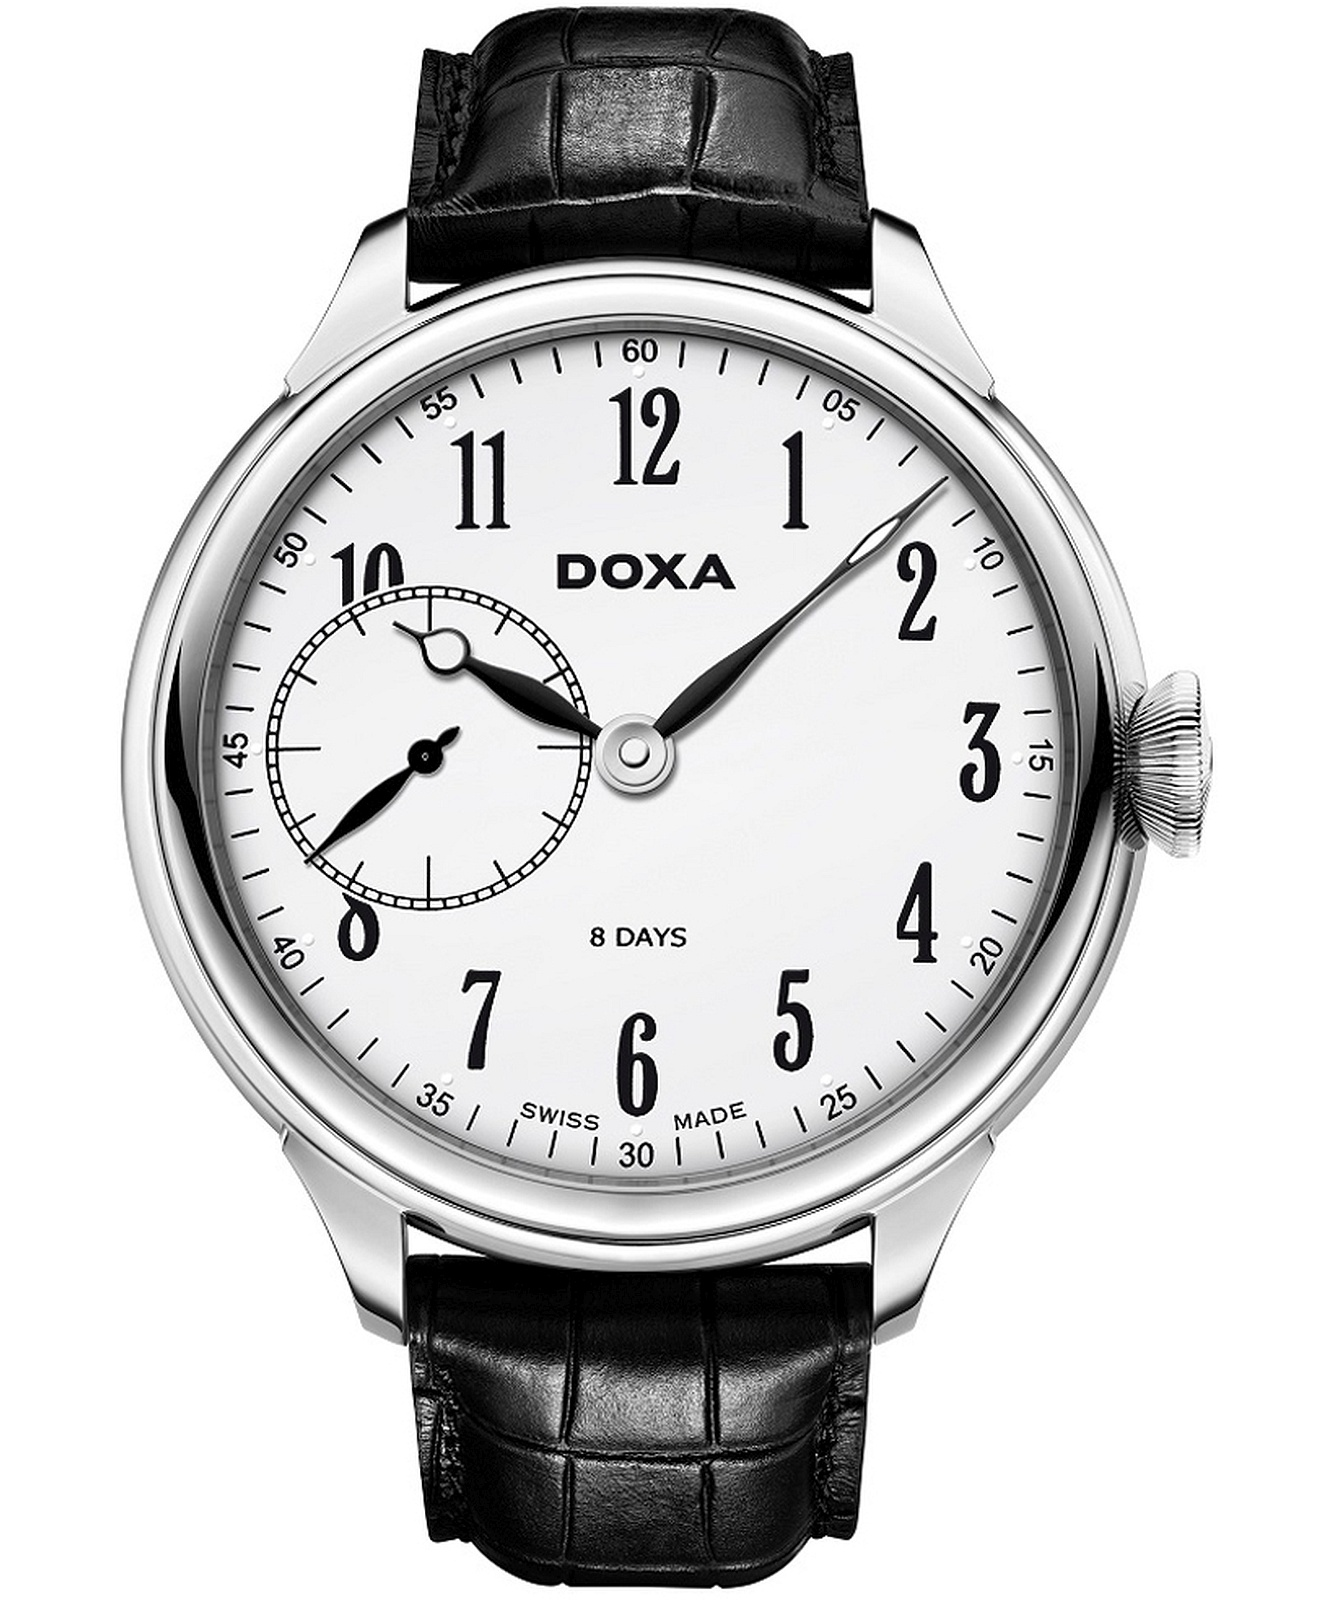 zegarek-meski-doxa-8-days-manufacture-automatic-limited-edition-125-10-015-01_001""